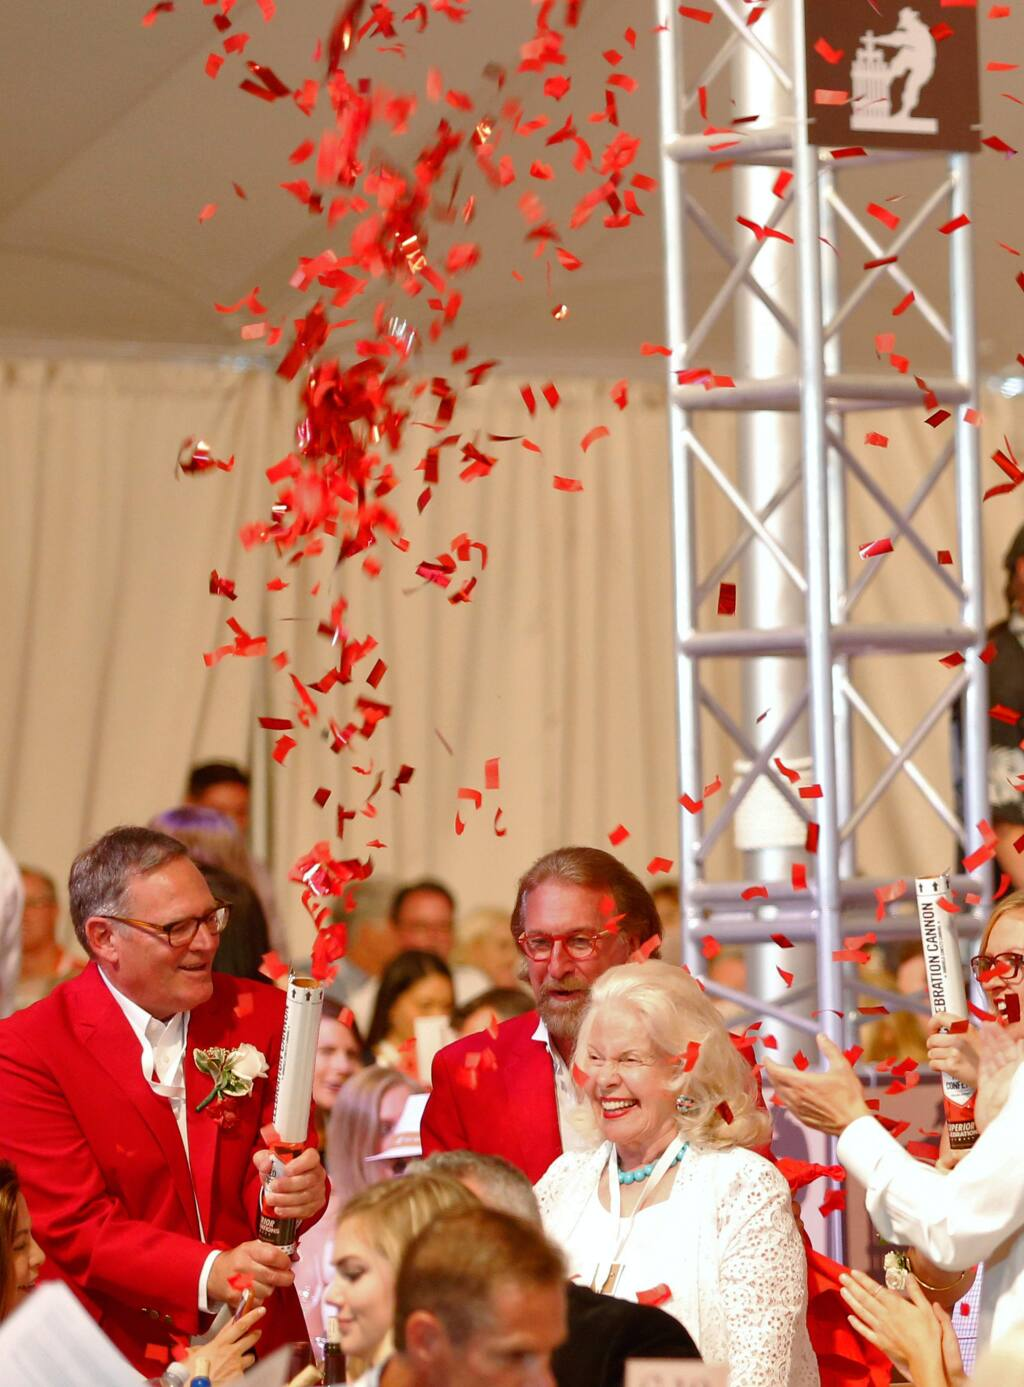 Michael Silacci, left, co-chair of the Hoopla Committee and winemaker at Opus One, shoots confetti in the air to celebrate with a winning bidder during Auction Napa Valley at Meadowood in St. Helena, California on Saturday, June 4, 2016. (Alvin Jornada / The Press Democrat)